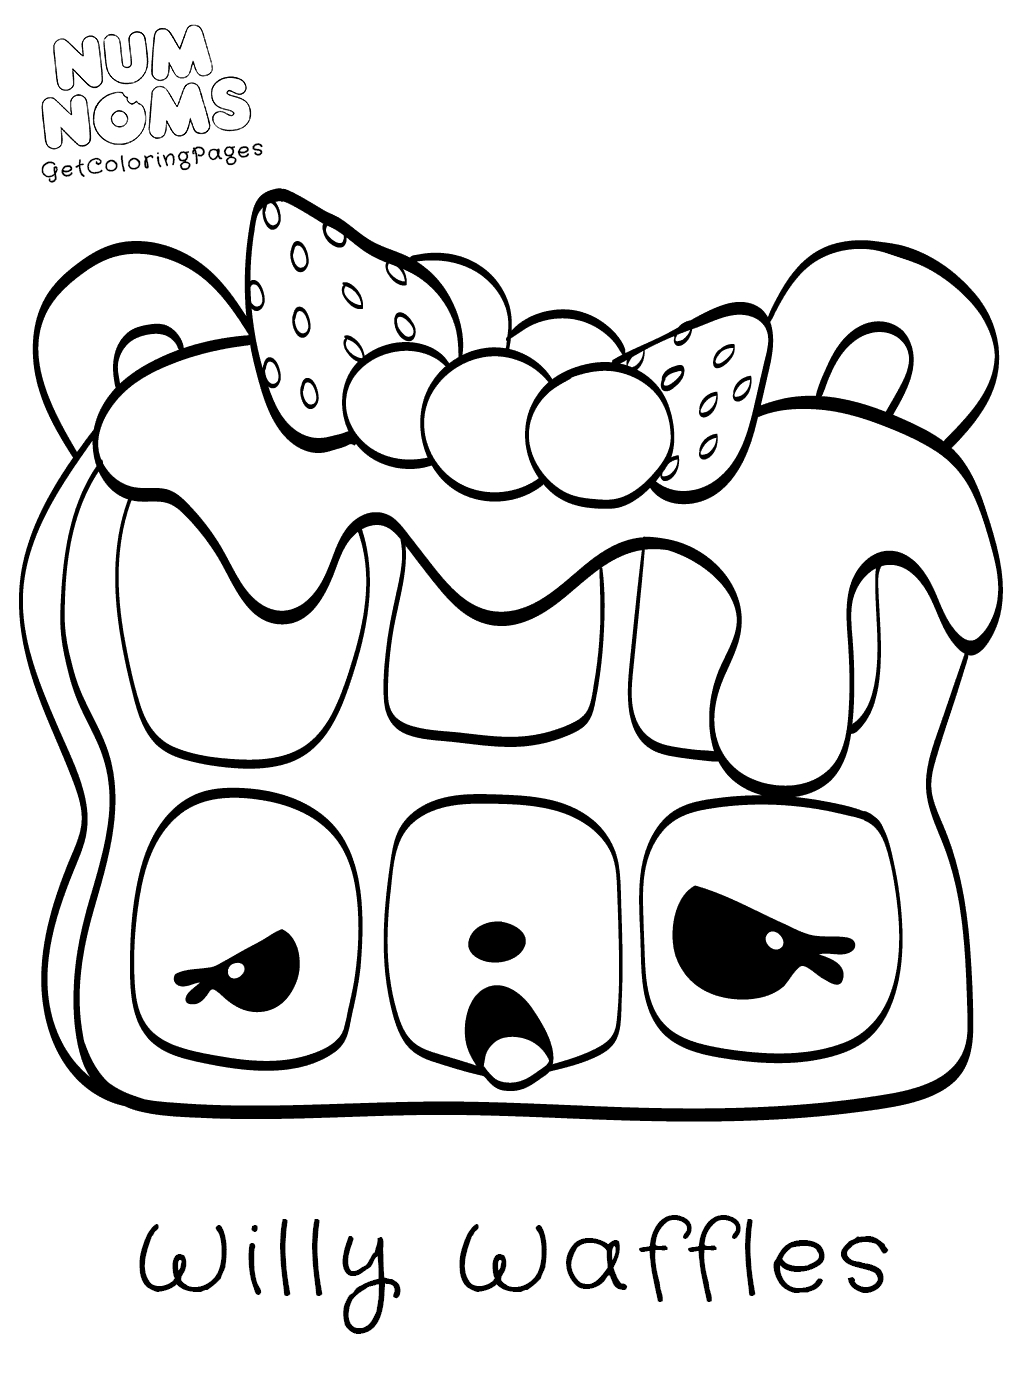 24 Num Noms Coloring Pages Selection Free Coloring Pages